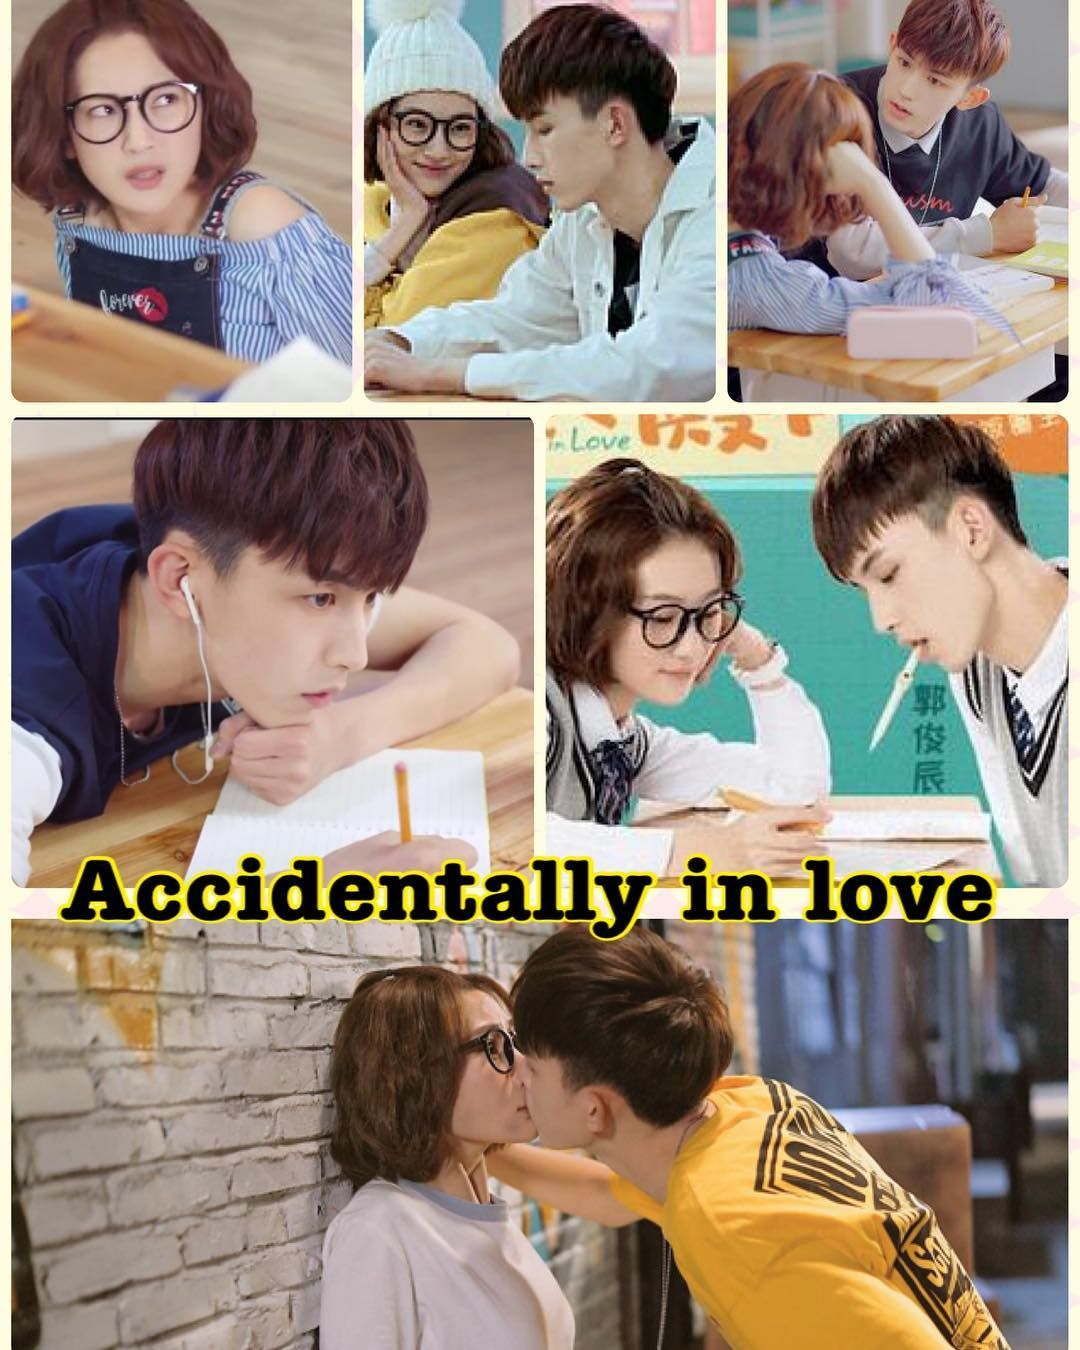 Accidentally in love #accidentallyinlove #cdrama #cdorama #drama